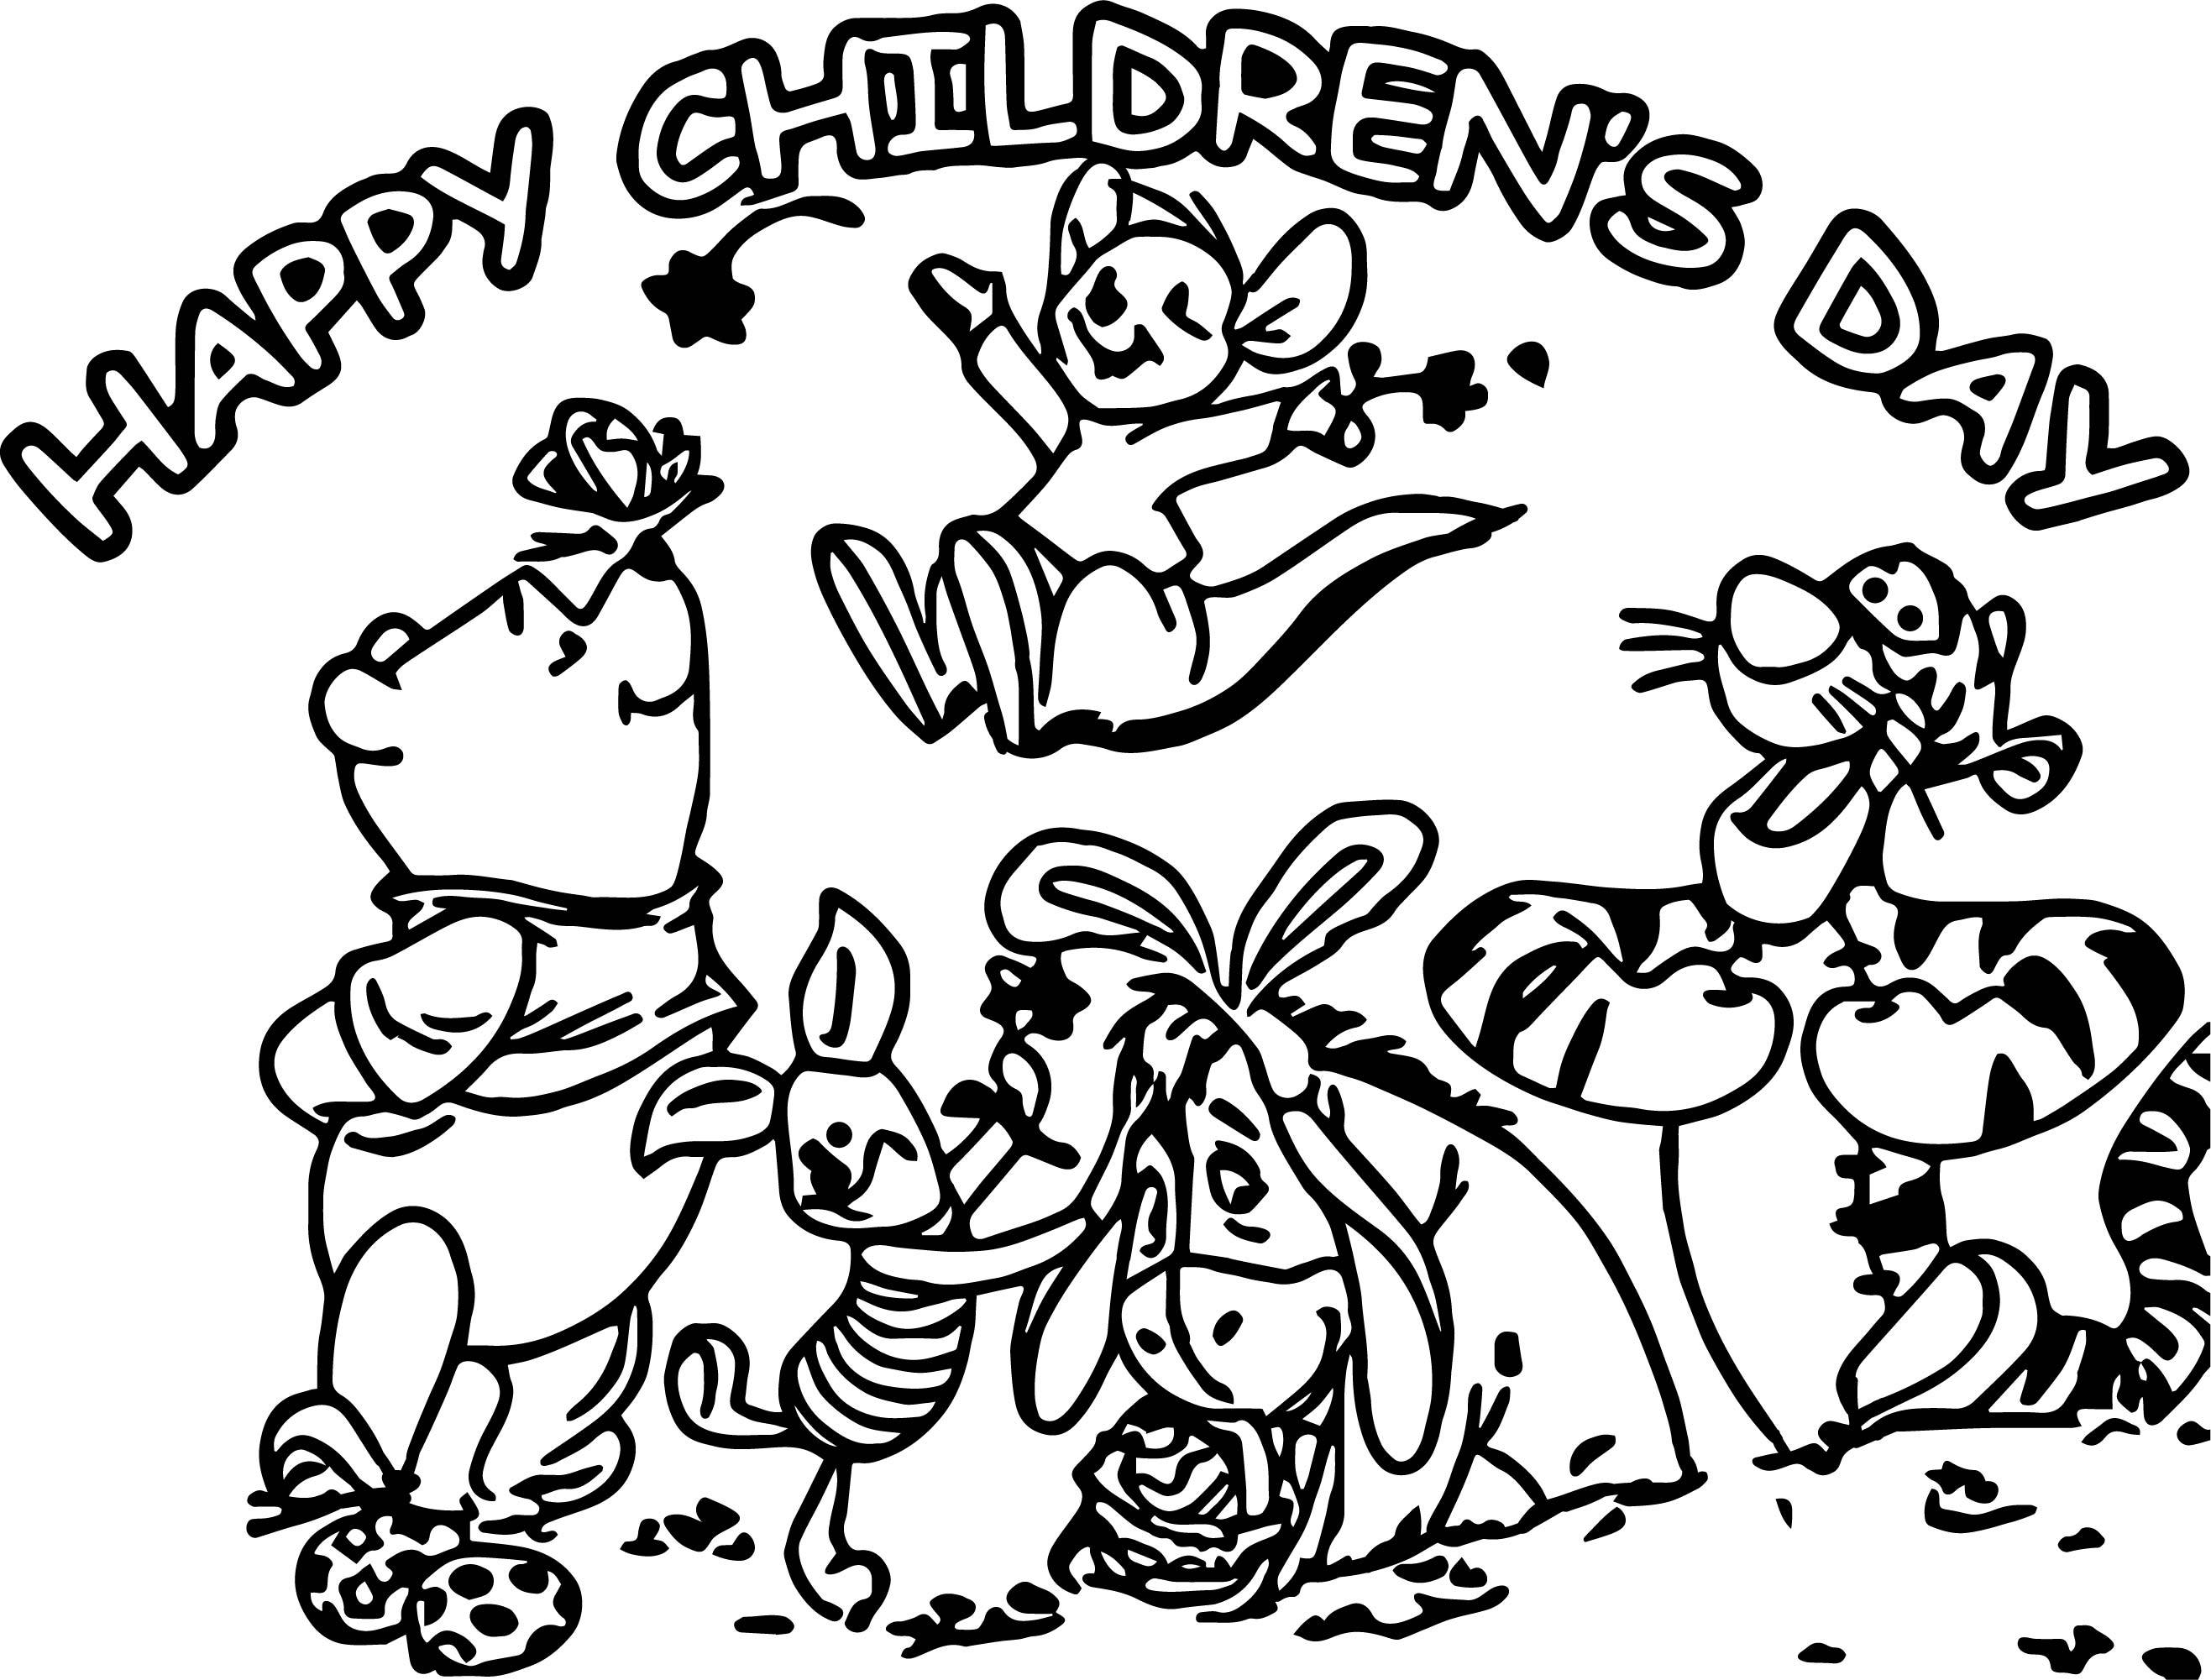 2633x2001 Awesome Printable Teletubbies Coloring Pages For Kids Http Image